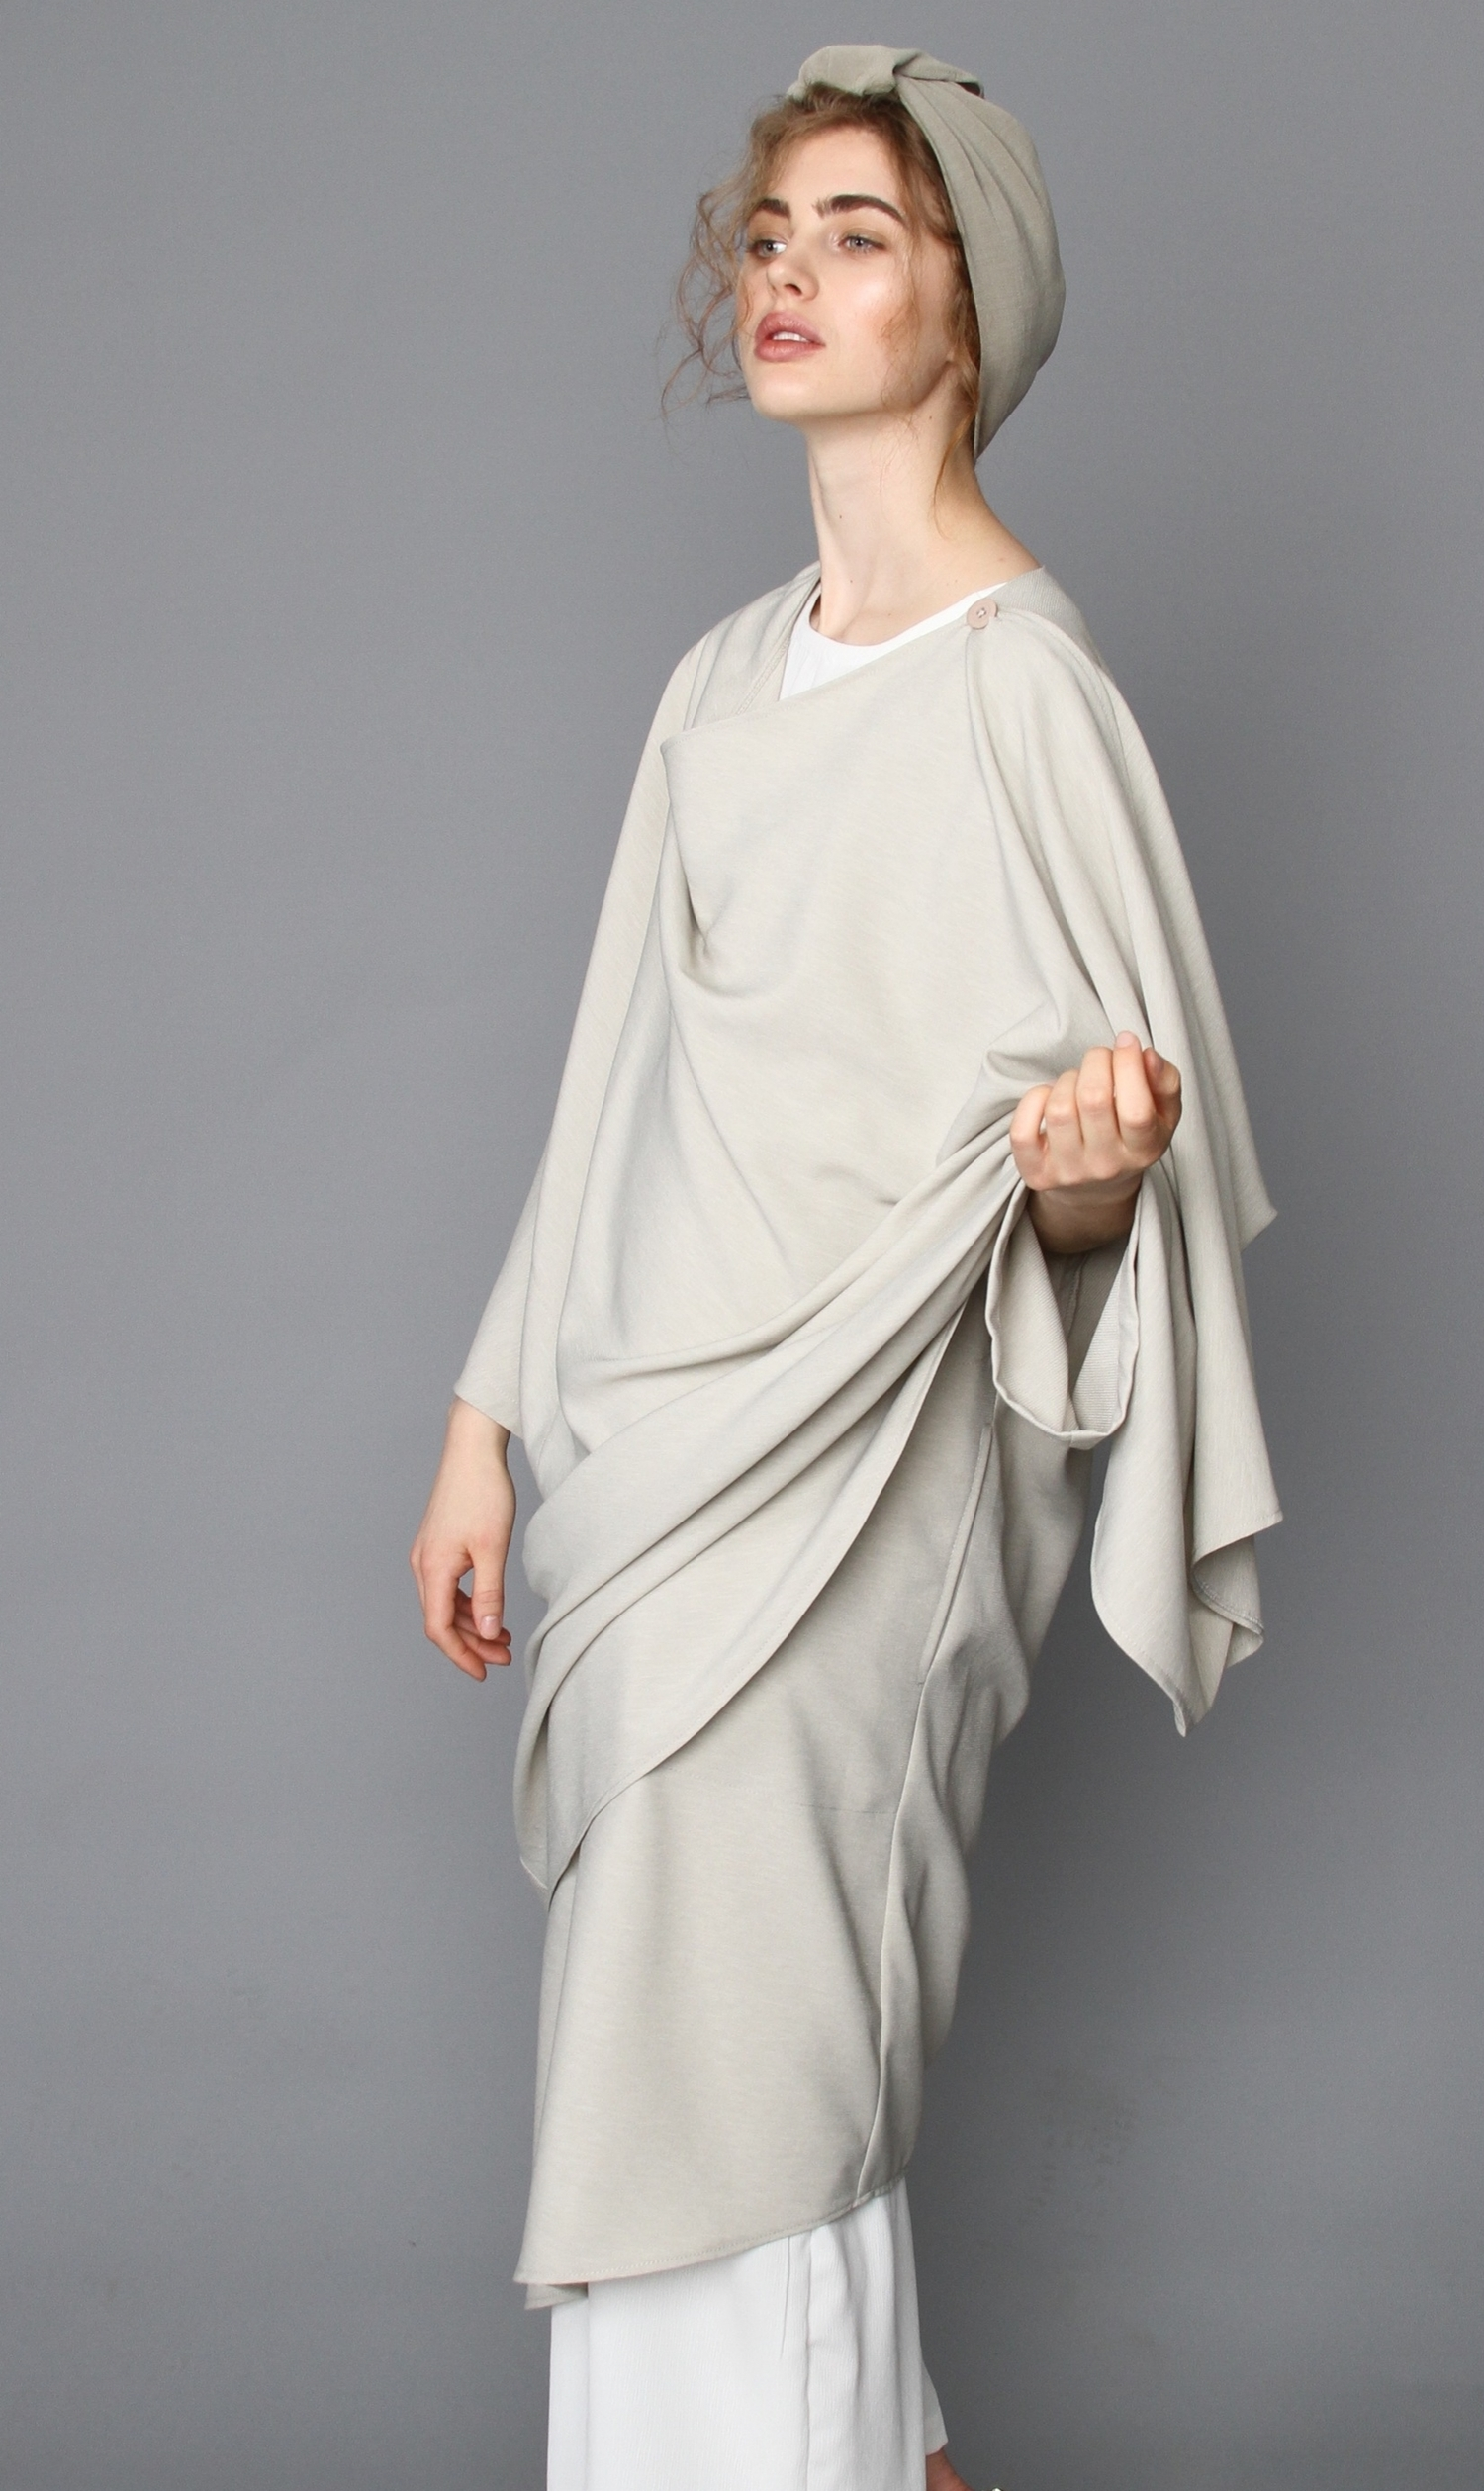 The Grecian Trench